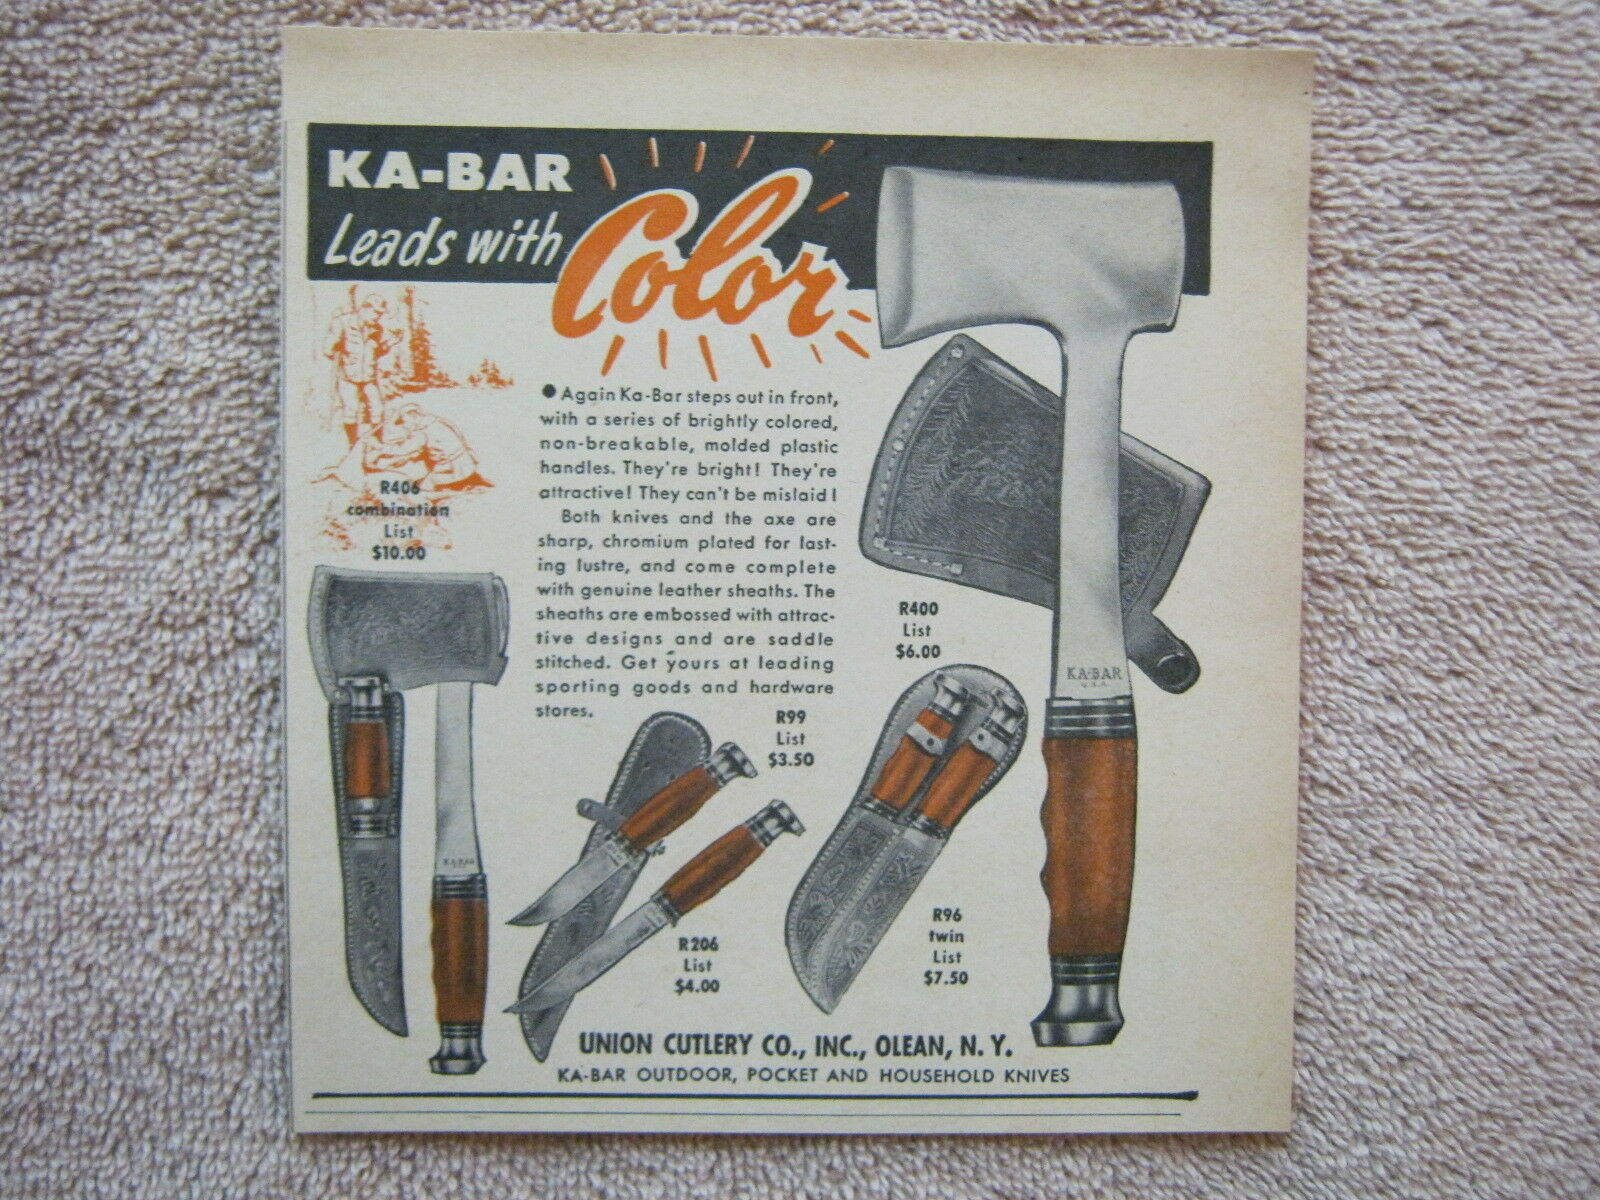 Vintage 1949 Union Cutlery Ka-Bar Ax Axe Knife Knives Leads with Color Print Ad